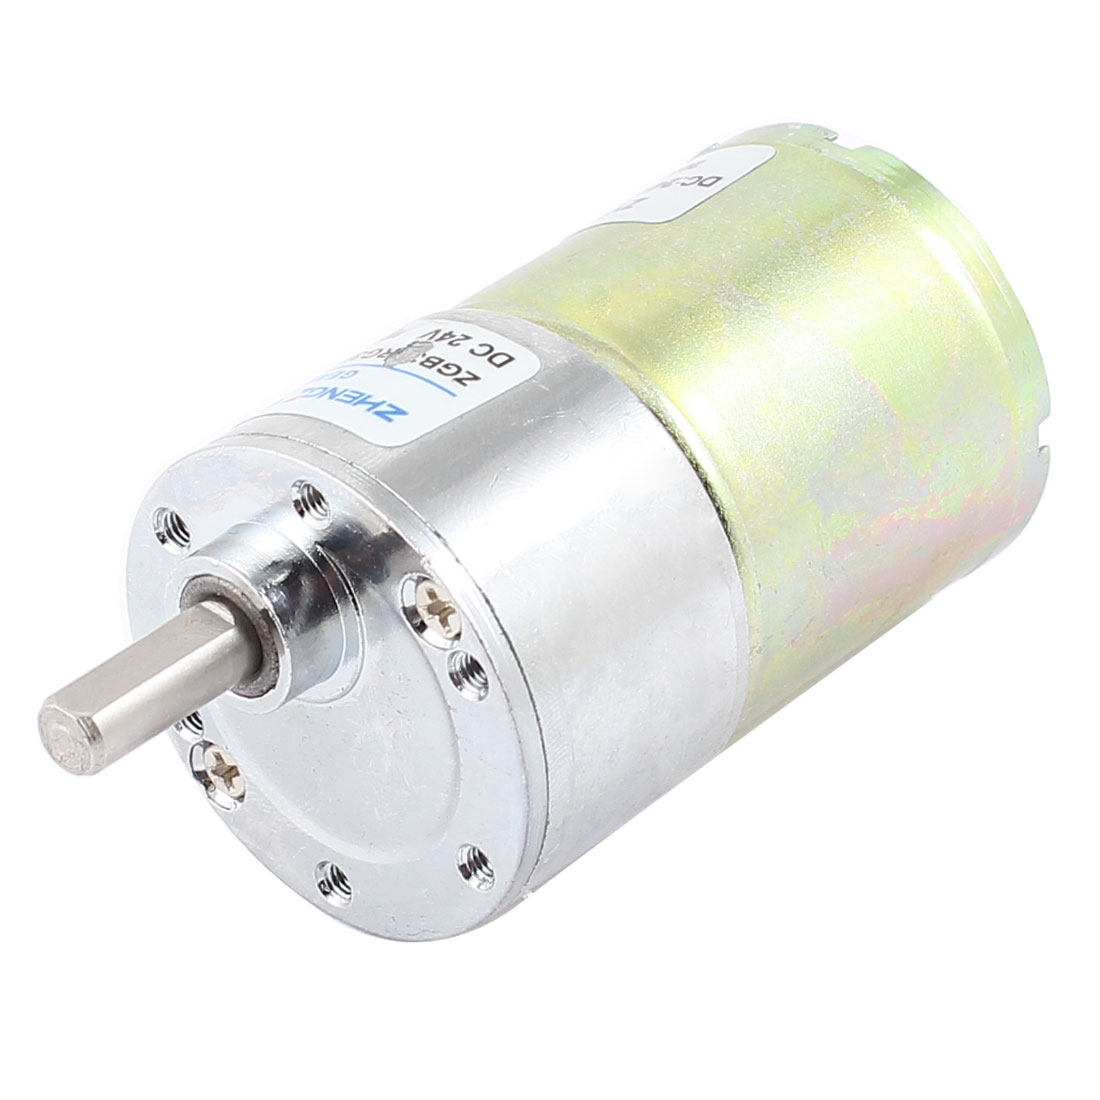 DC 24V 0.33A 37mm Dia Magnetic Gear Geared Box Motor 1000 RPM